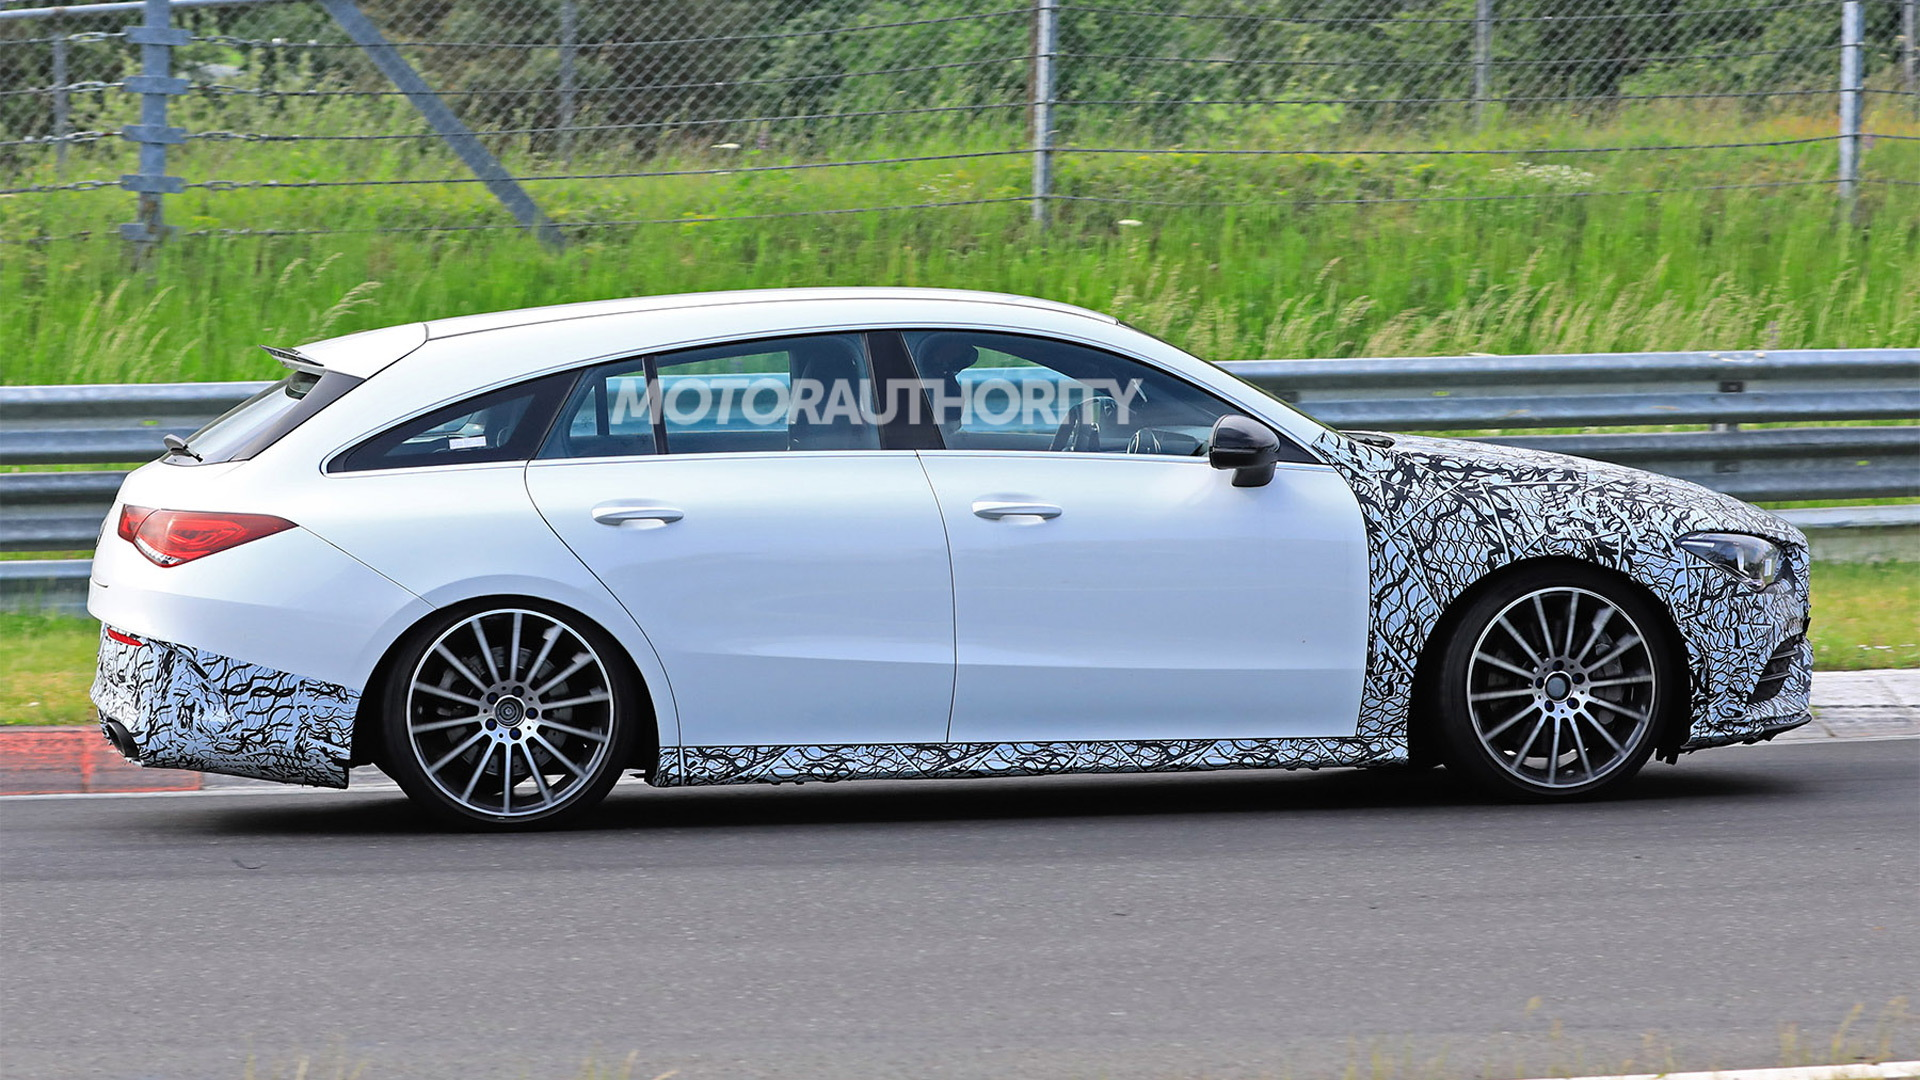 2020 Mercedes-AMG CLA45 Shooting Brake spy shots - Image via S. Baldauf/SB-Medien